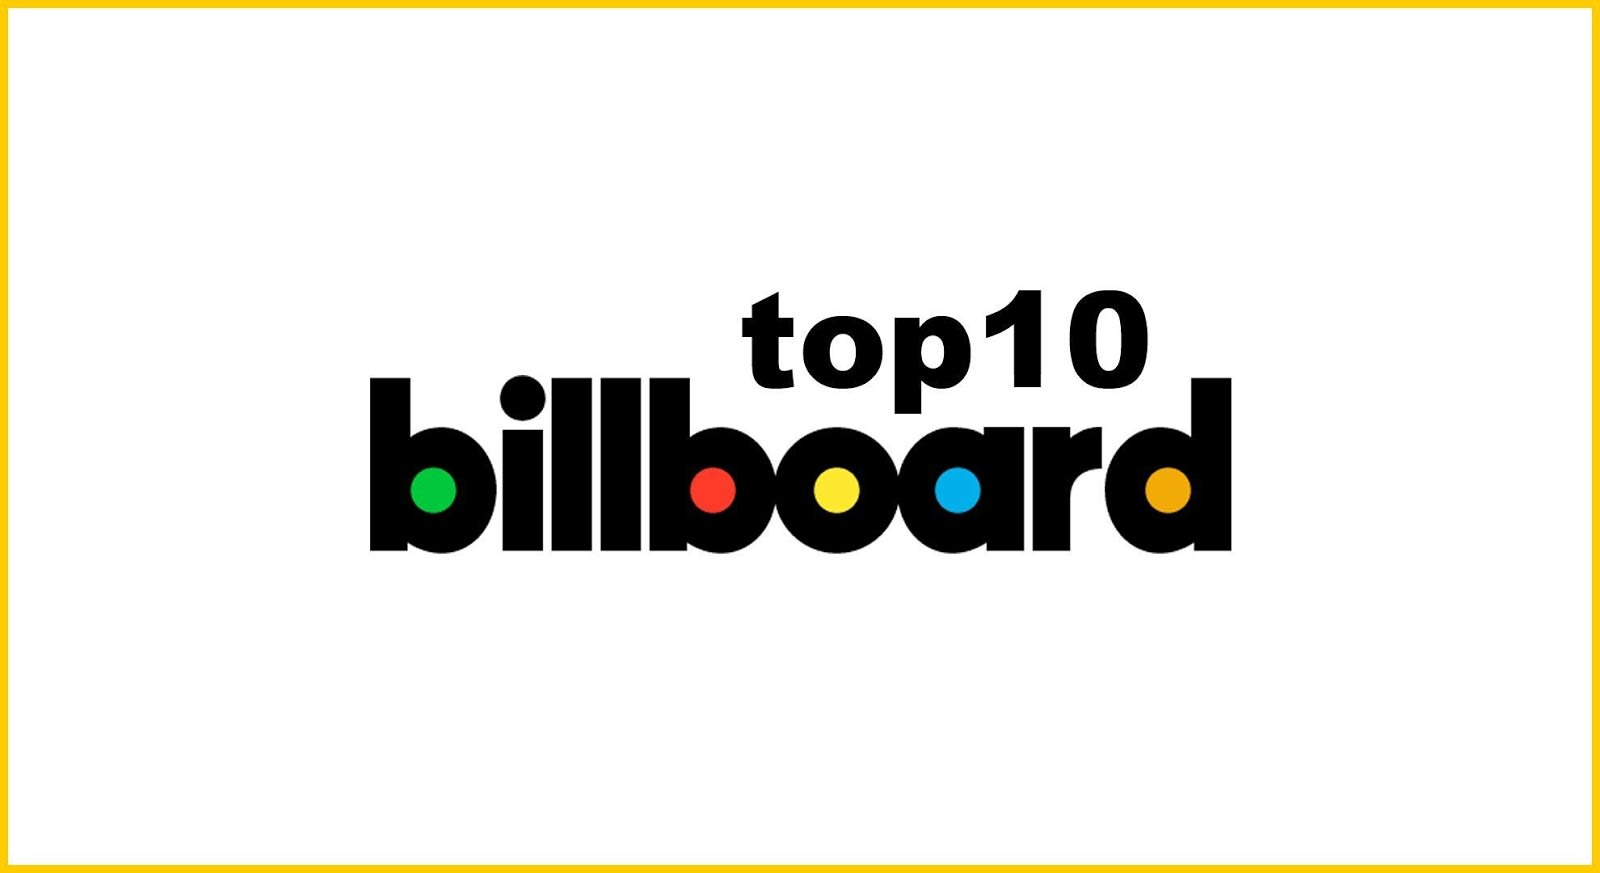 Top 10 Música mexicana de BillBoard. Semana 13 de julio, 2019